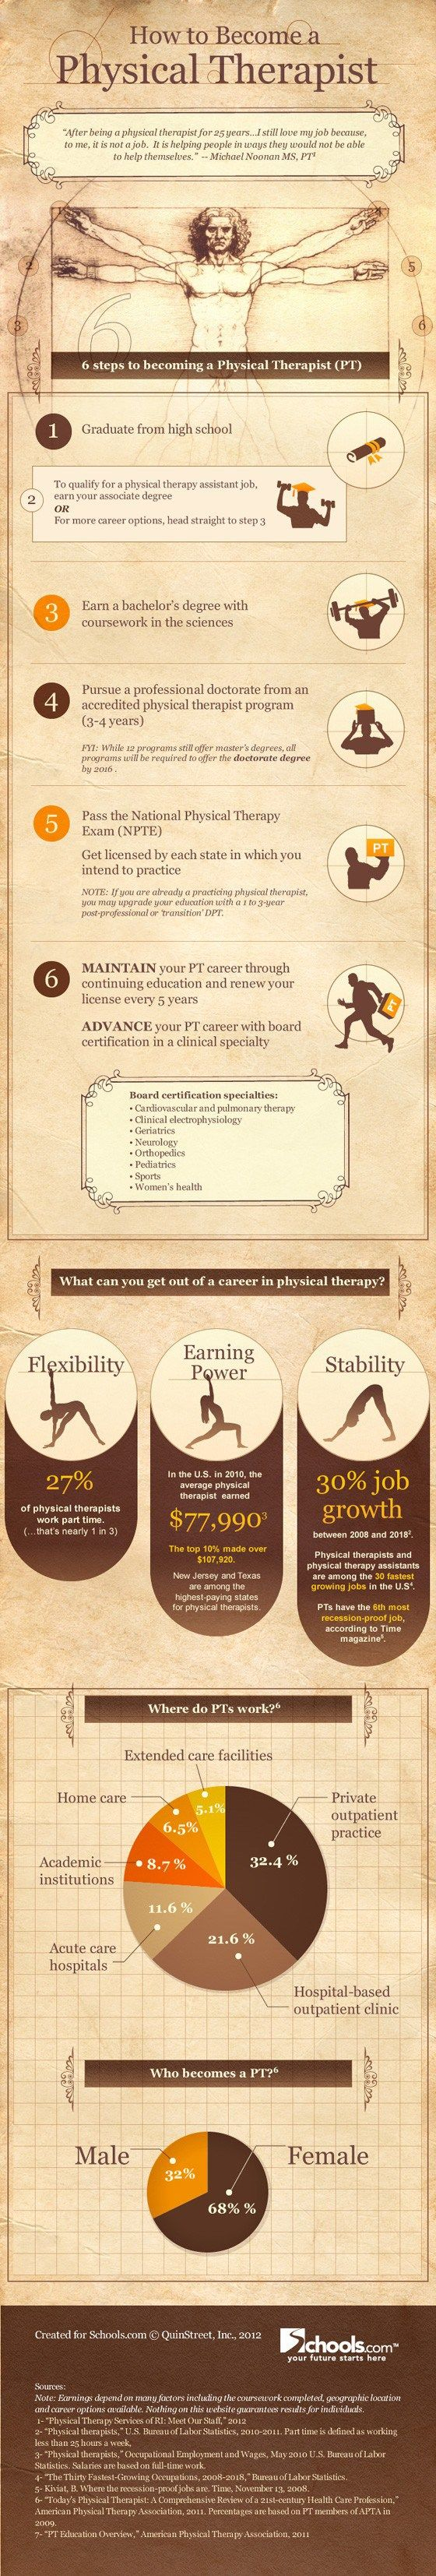 How to become a physical therapist.